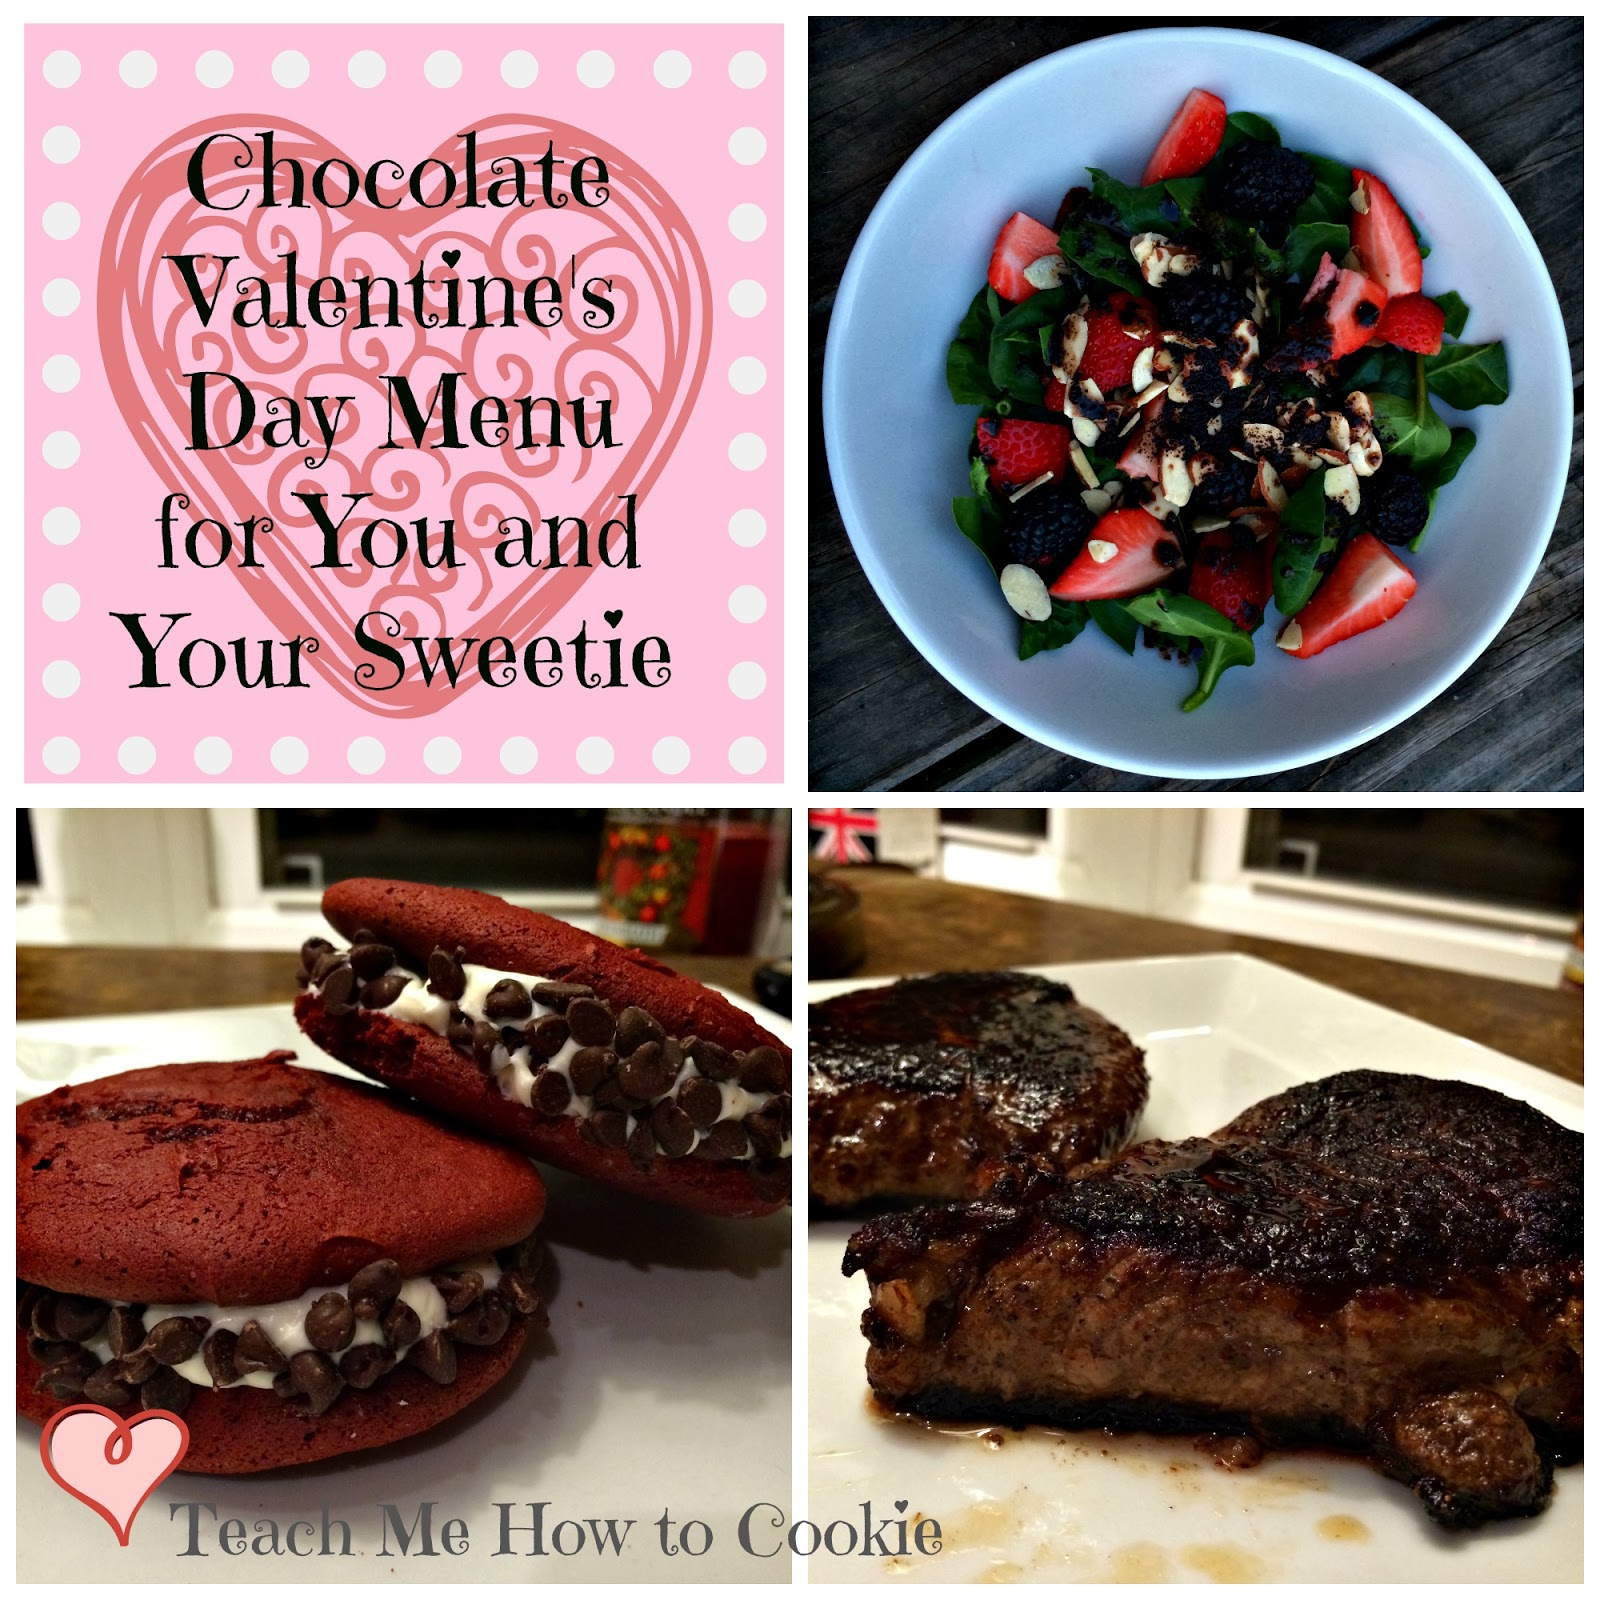 Valentine's Day Dinner Menu for you and your sweetie